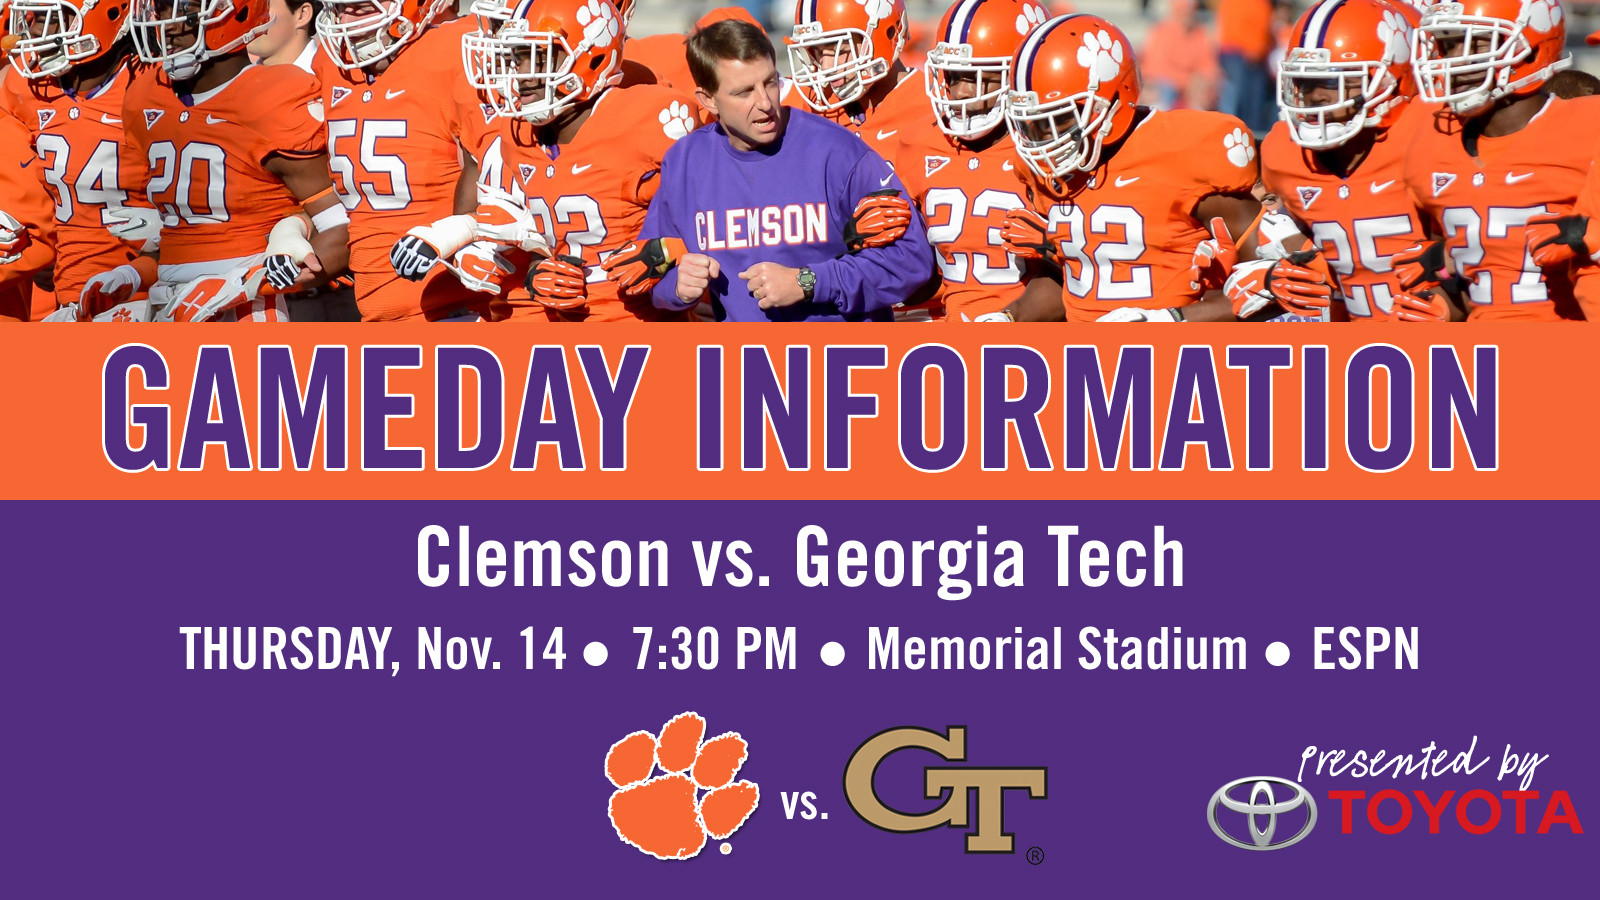 Clemson vs. Georgia Tech Football Gameday Information Guide